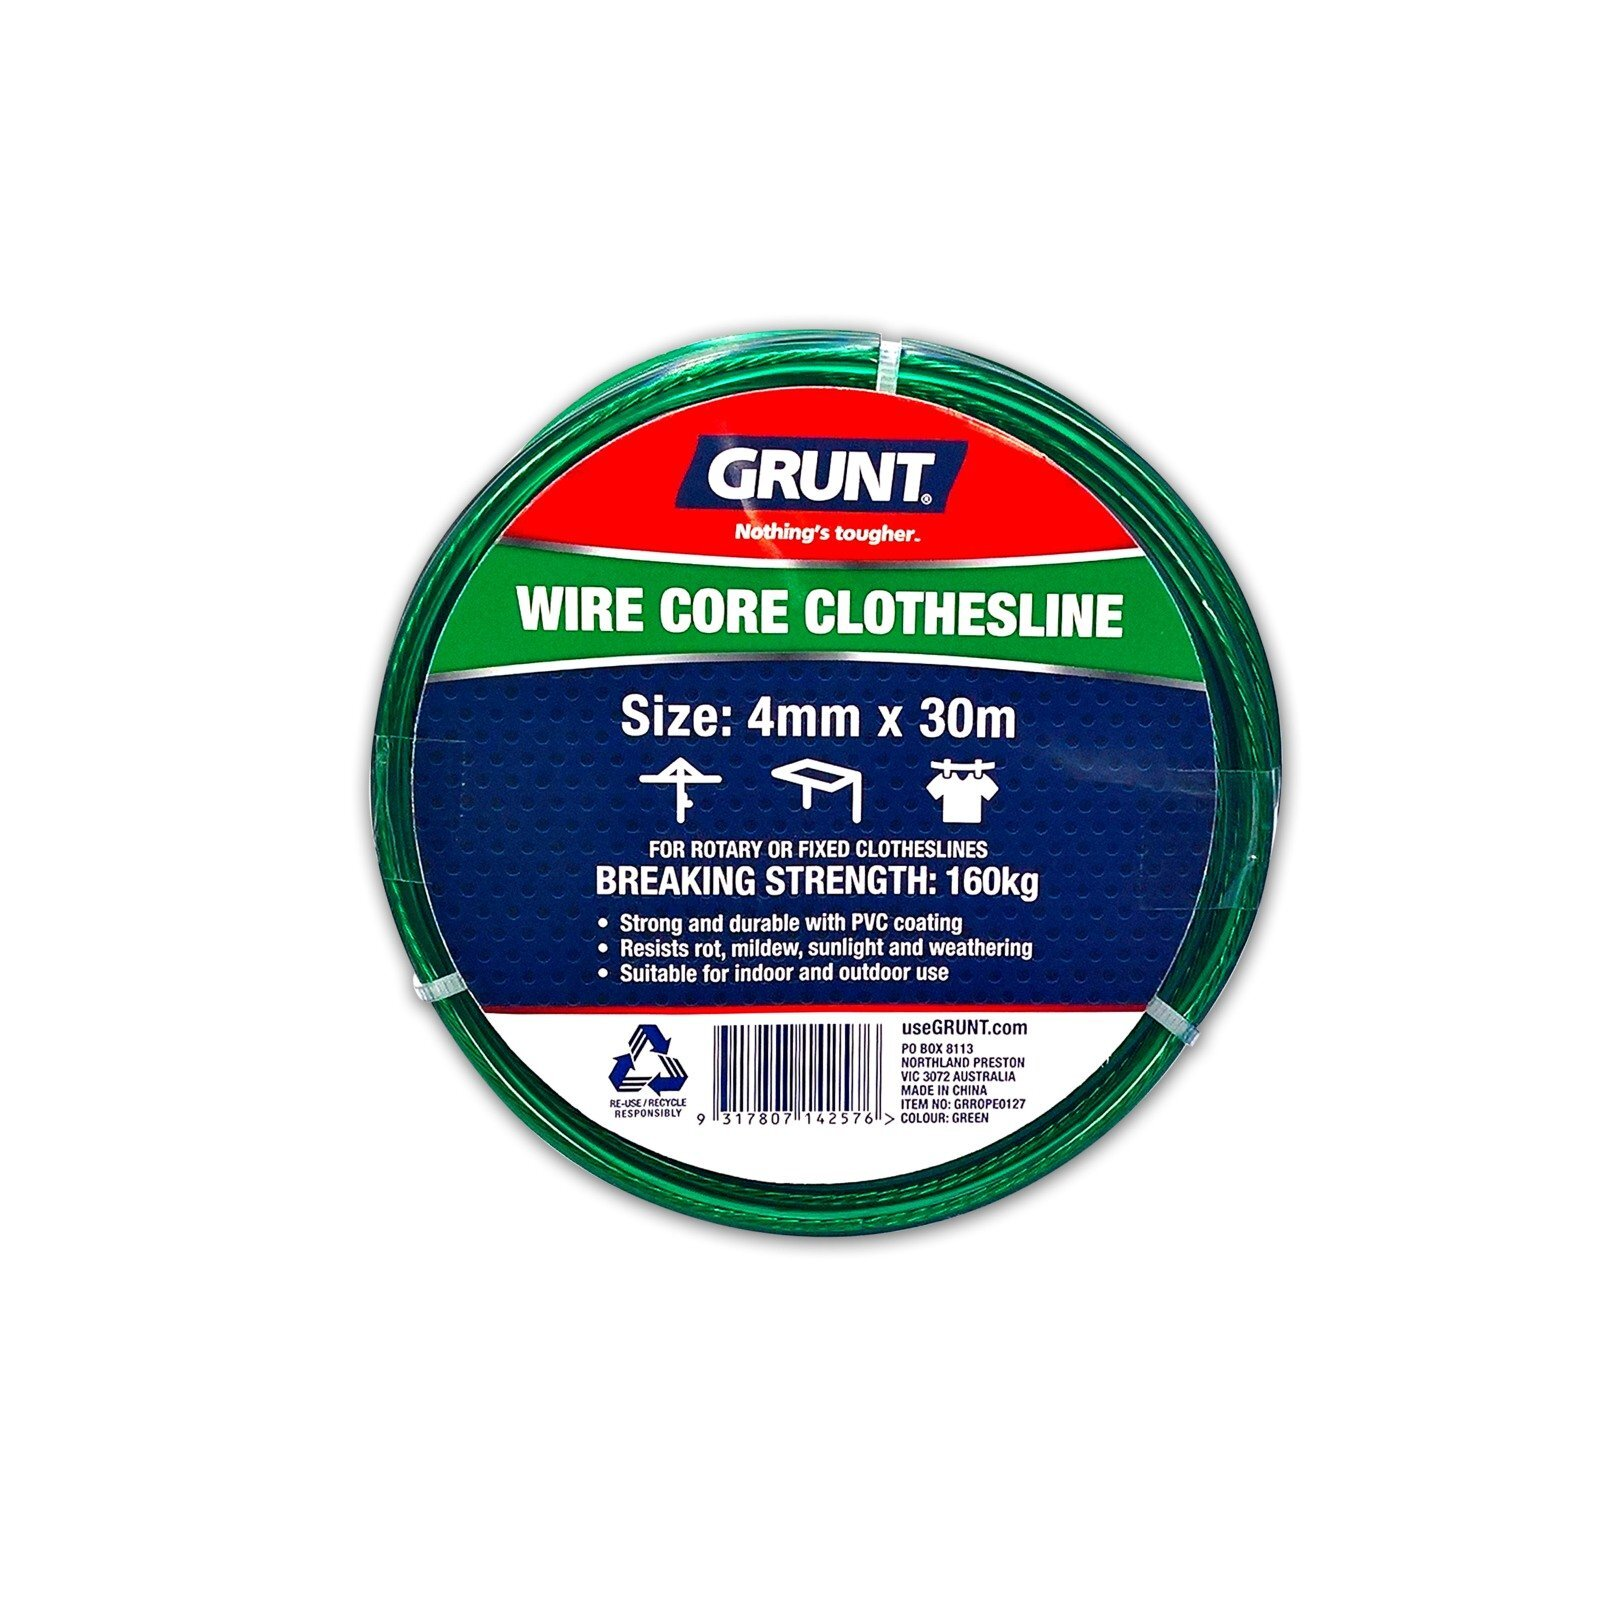 Easy DIY Replacement*Australian Brand Grunt Poly FIBRE CORE CLOTHESLINE 4mmx30m